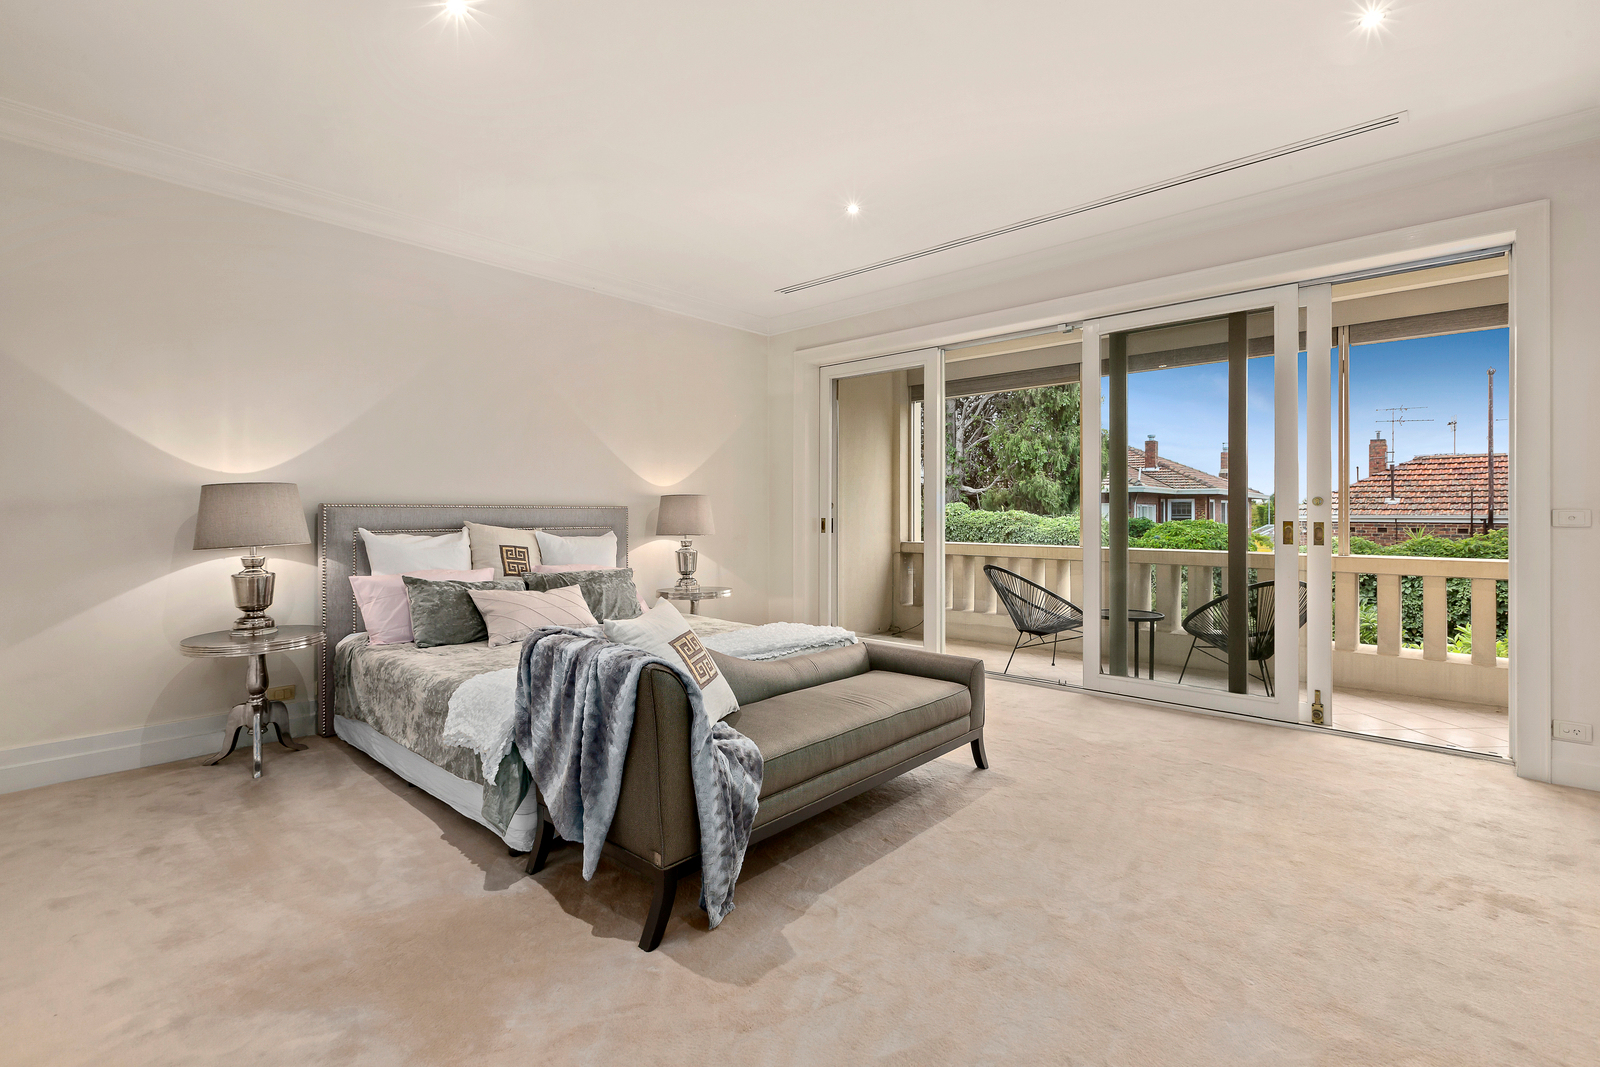 37 Washington Street, Toorak 3142 - Image 10